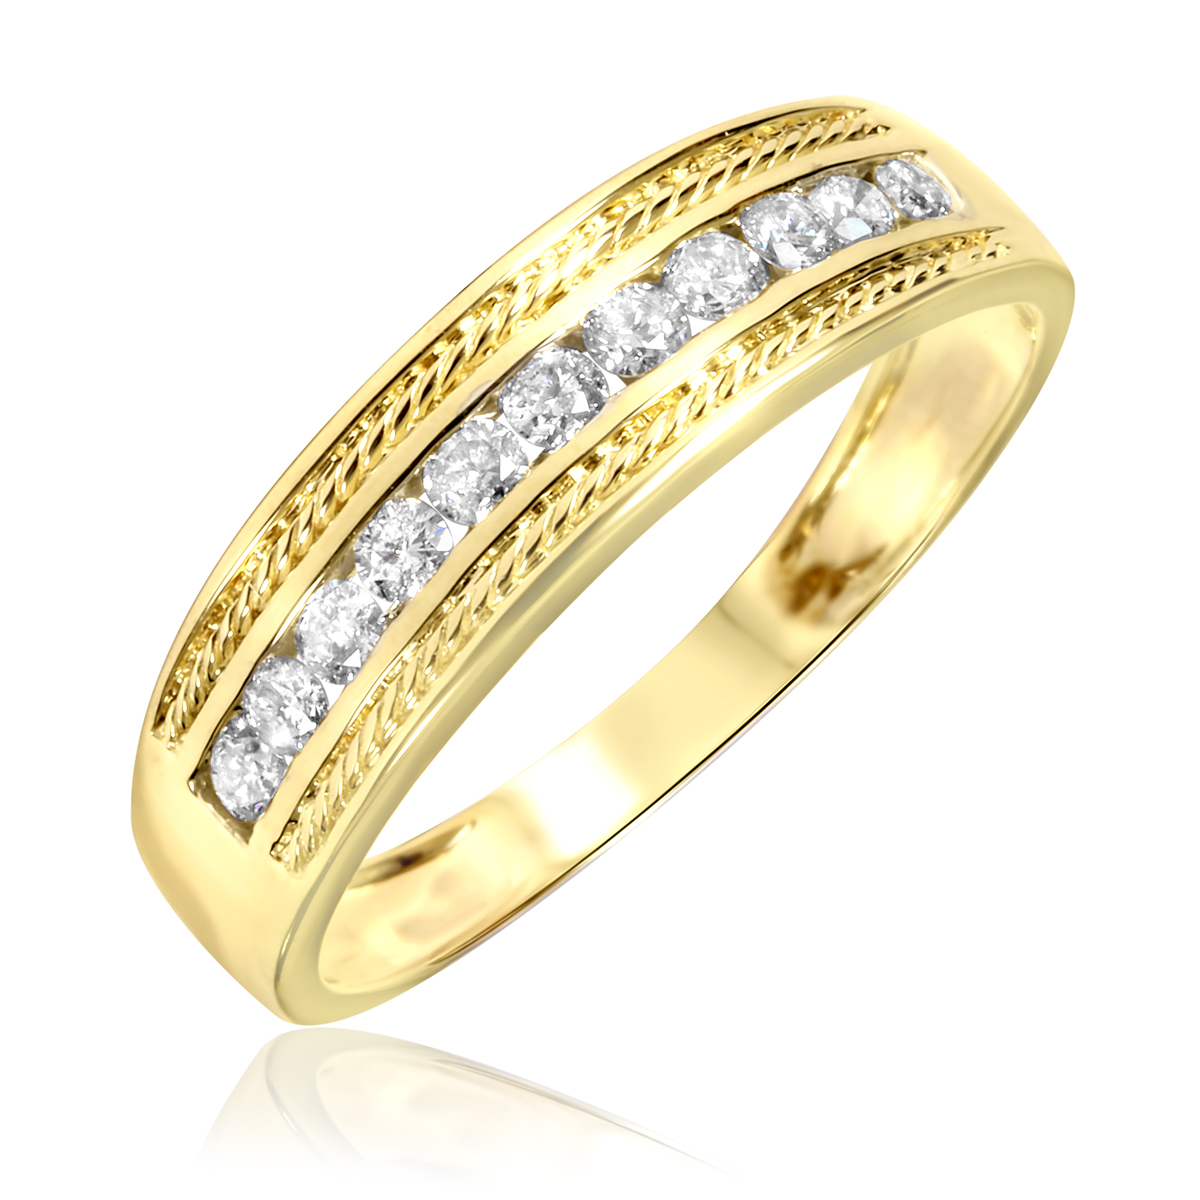 New fashion wedding ring mens wedding rings yellow gold for Mens wedding rings yellow gold